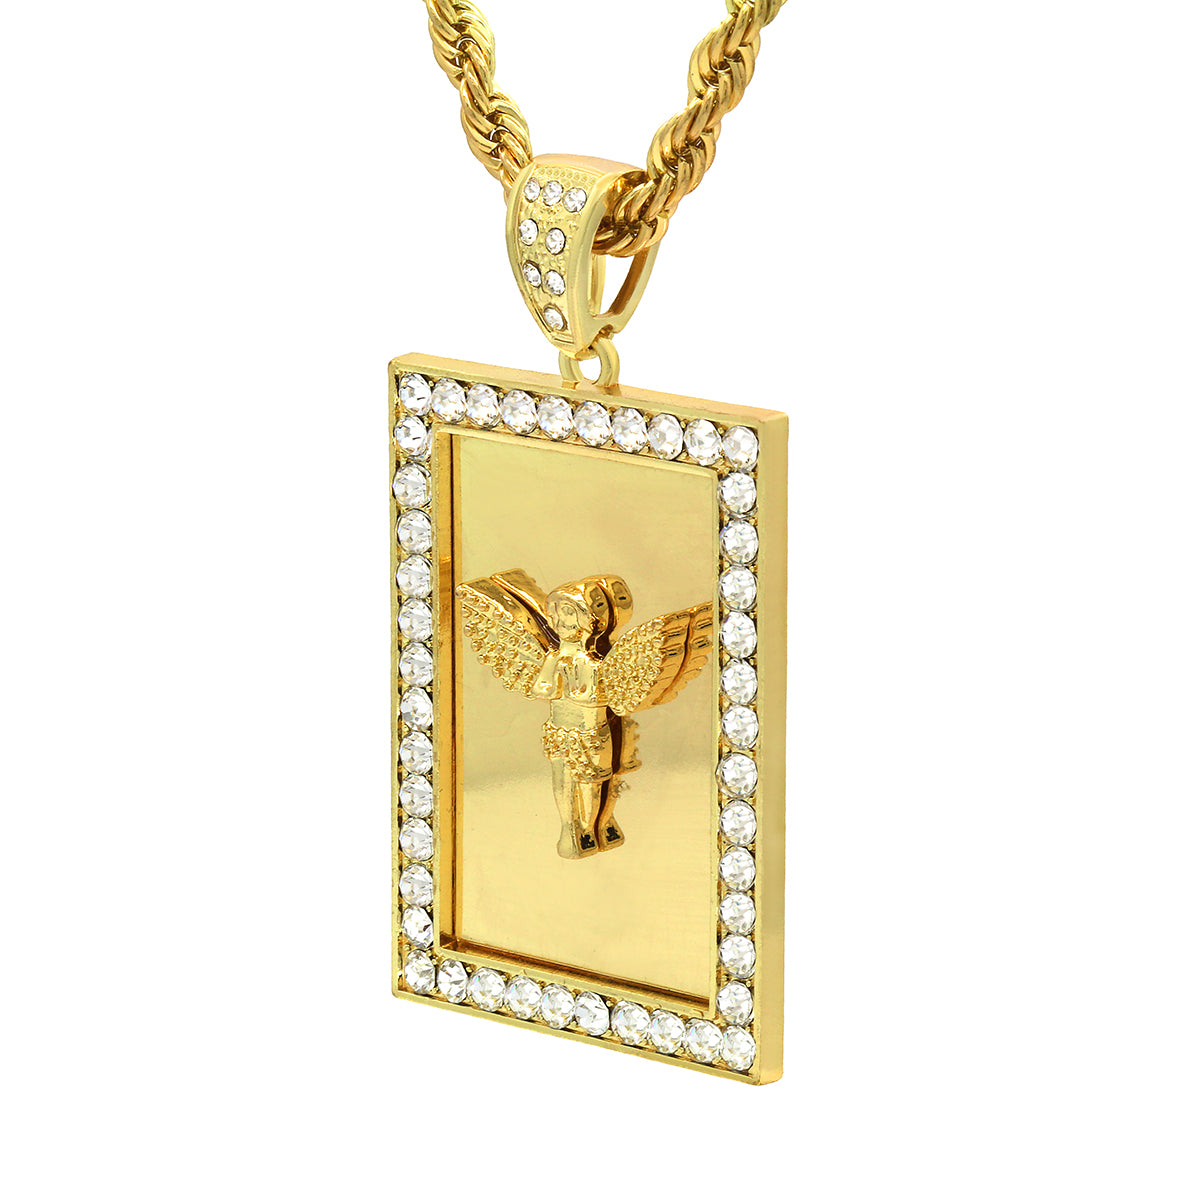 Hip hop pendants mirror angel pendant with rope blingkingstar 14k gold filled fully iced out square mirror angel pendant with rope chain aloadofball